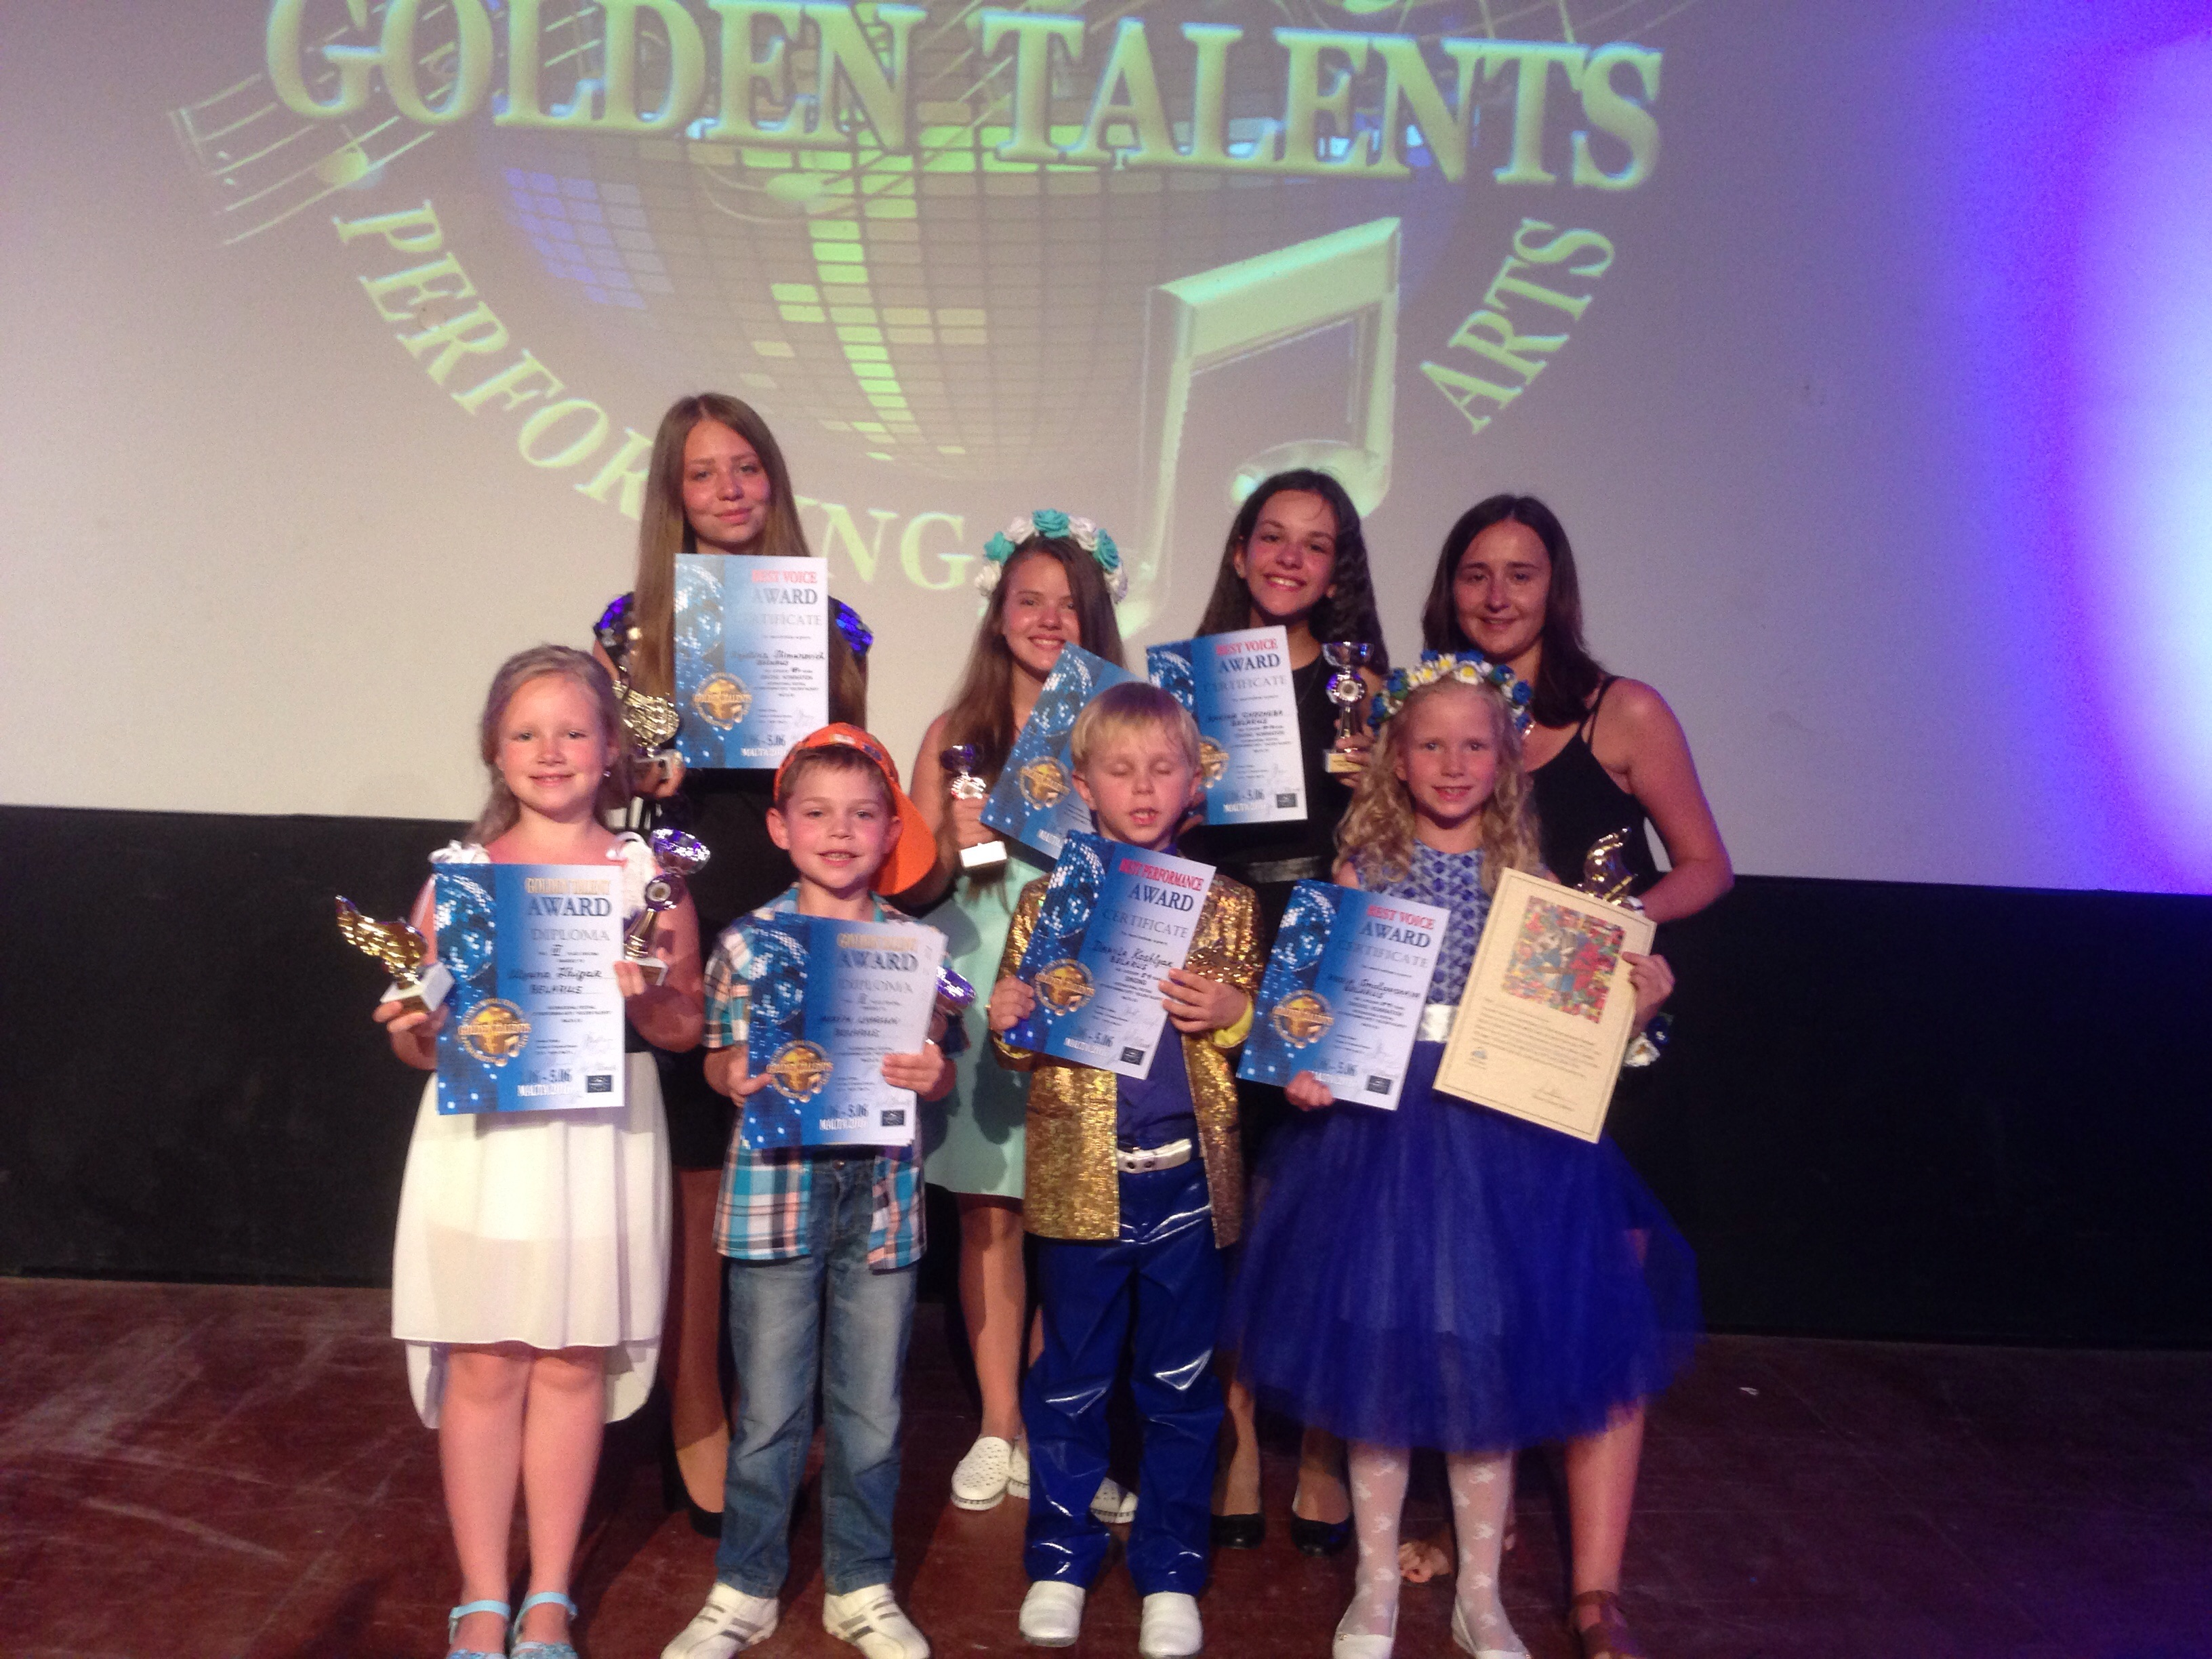 Конкурс Golden Talents -Malta 2016